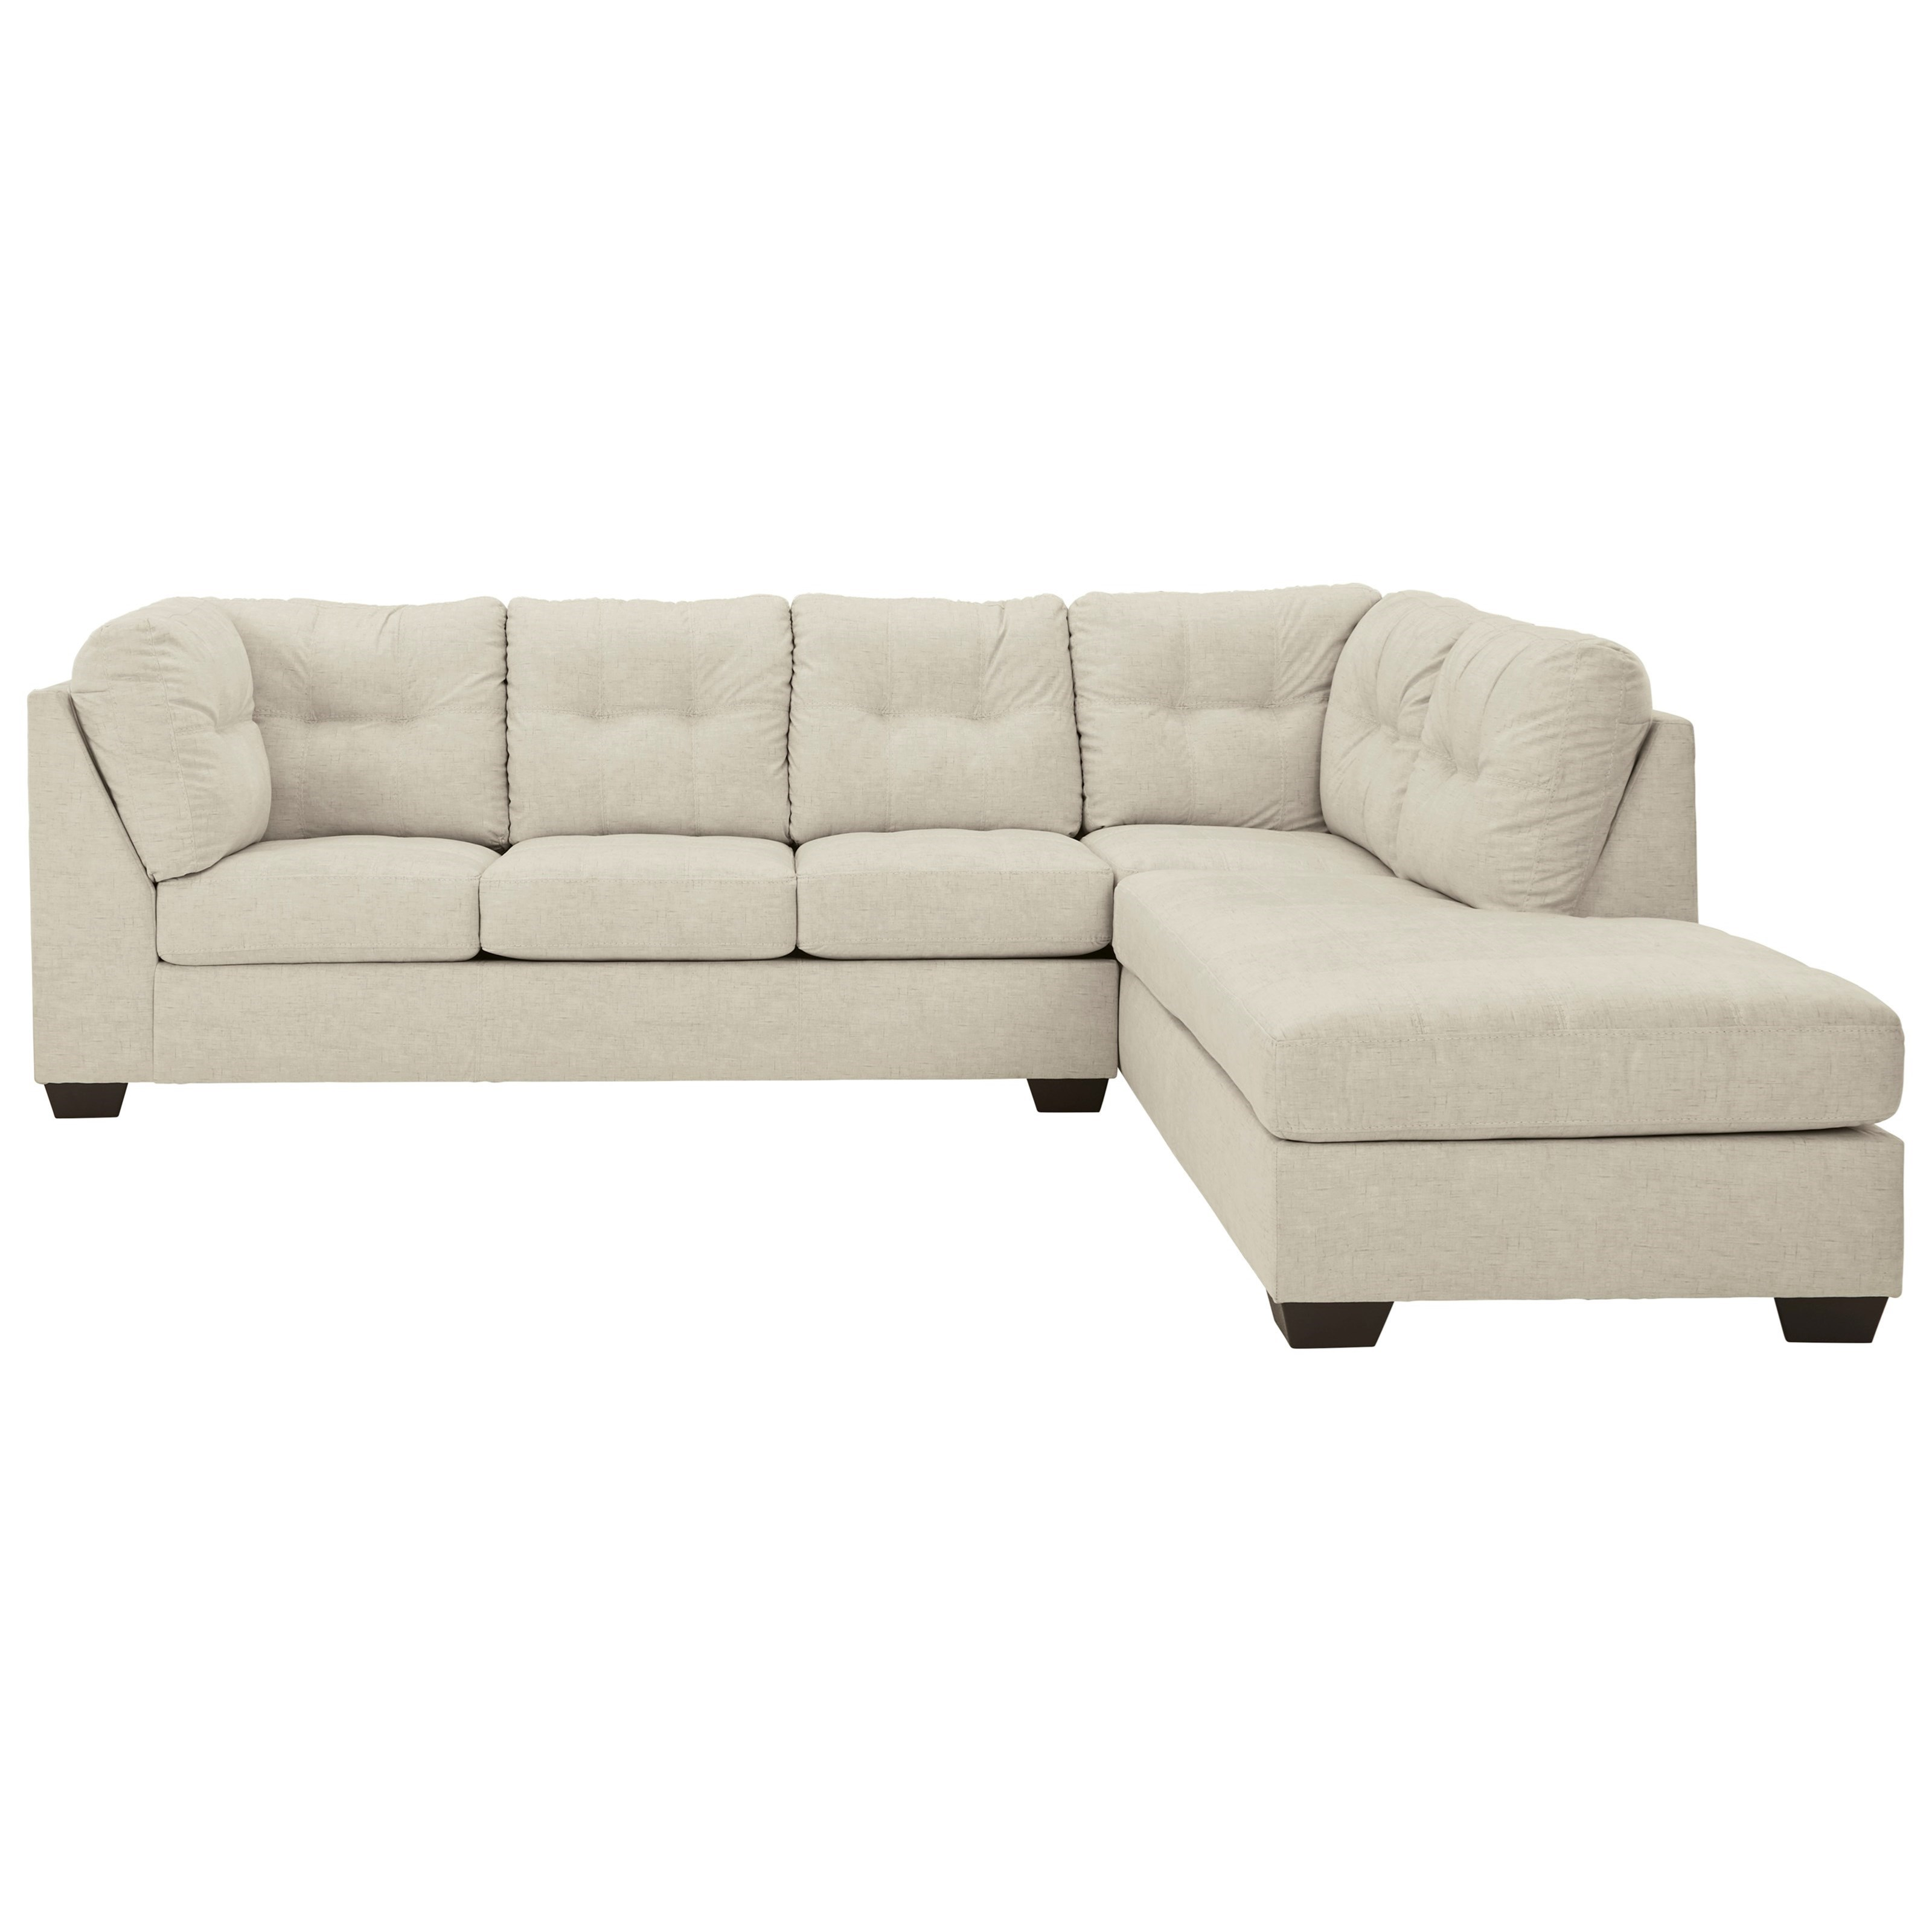 Falkirk 2-Piece Sectional with Chaise by Benchcraft at Miller Waldrop Furniture and Decor